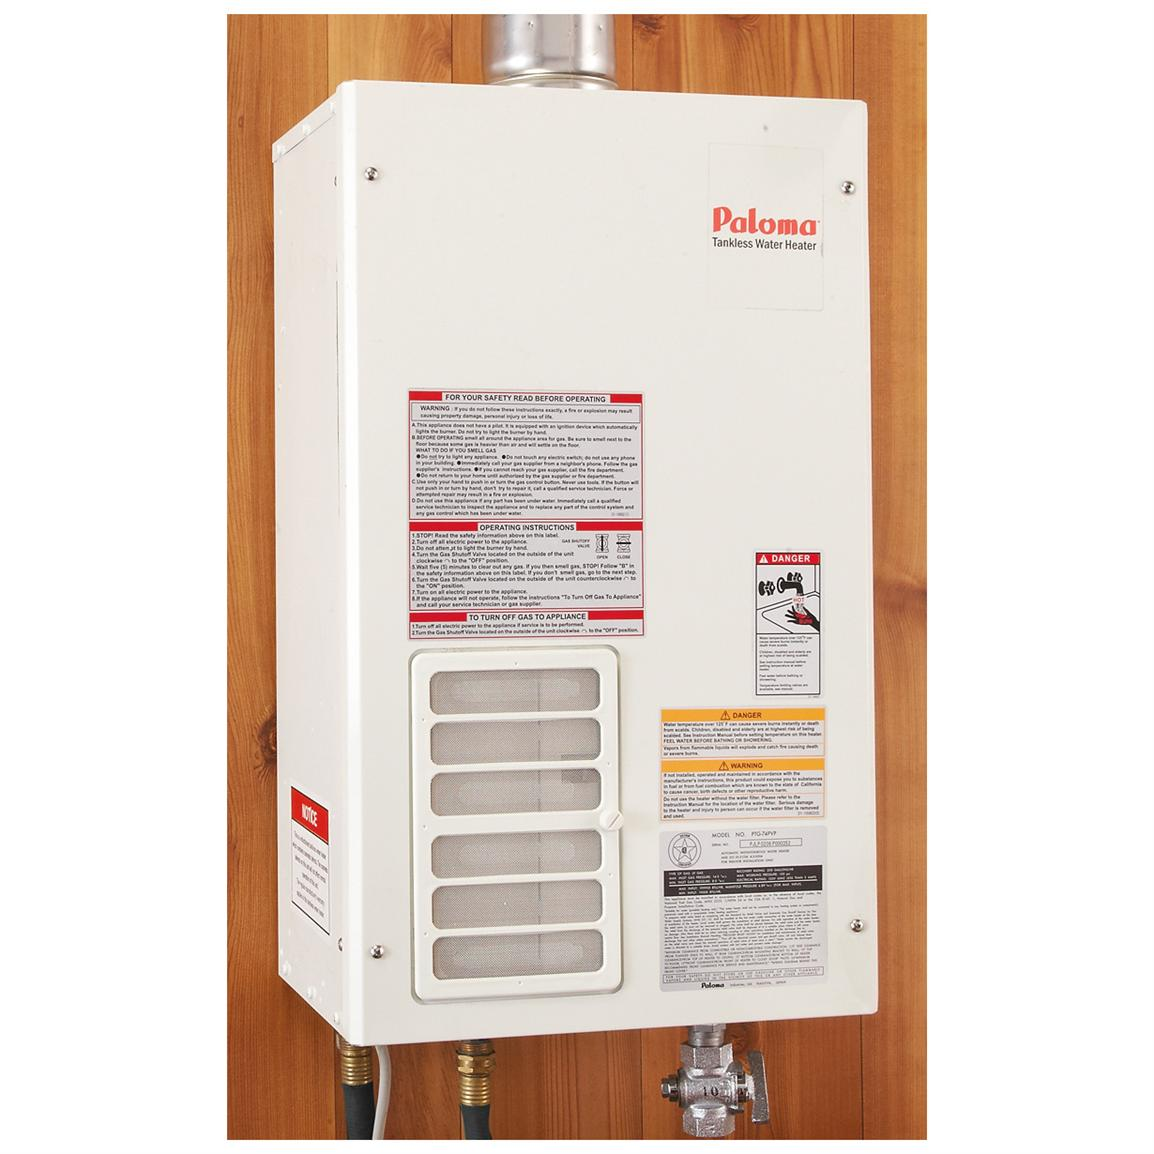 Paloma 174 Tankless Water Heater 233529 Portable Toilets